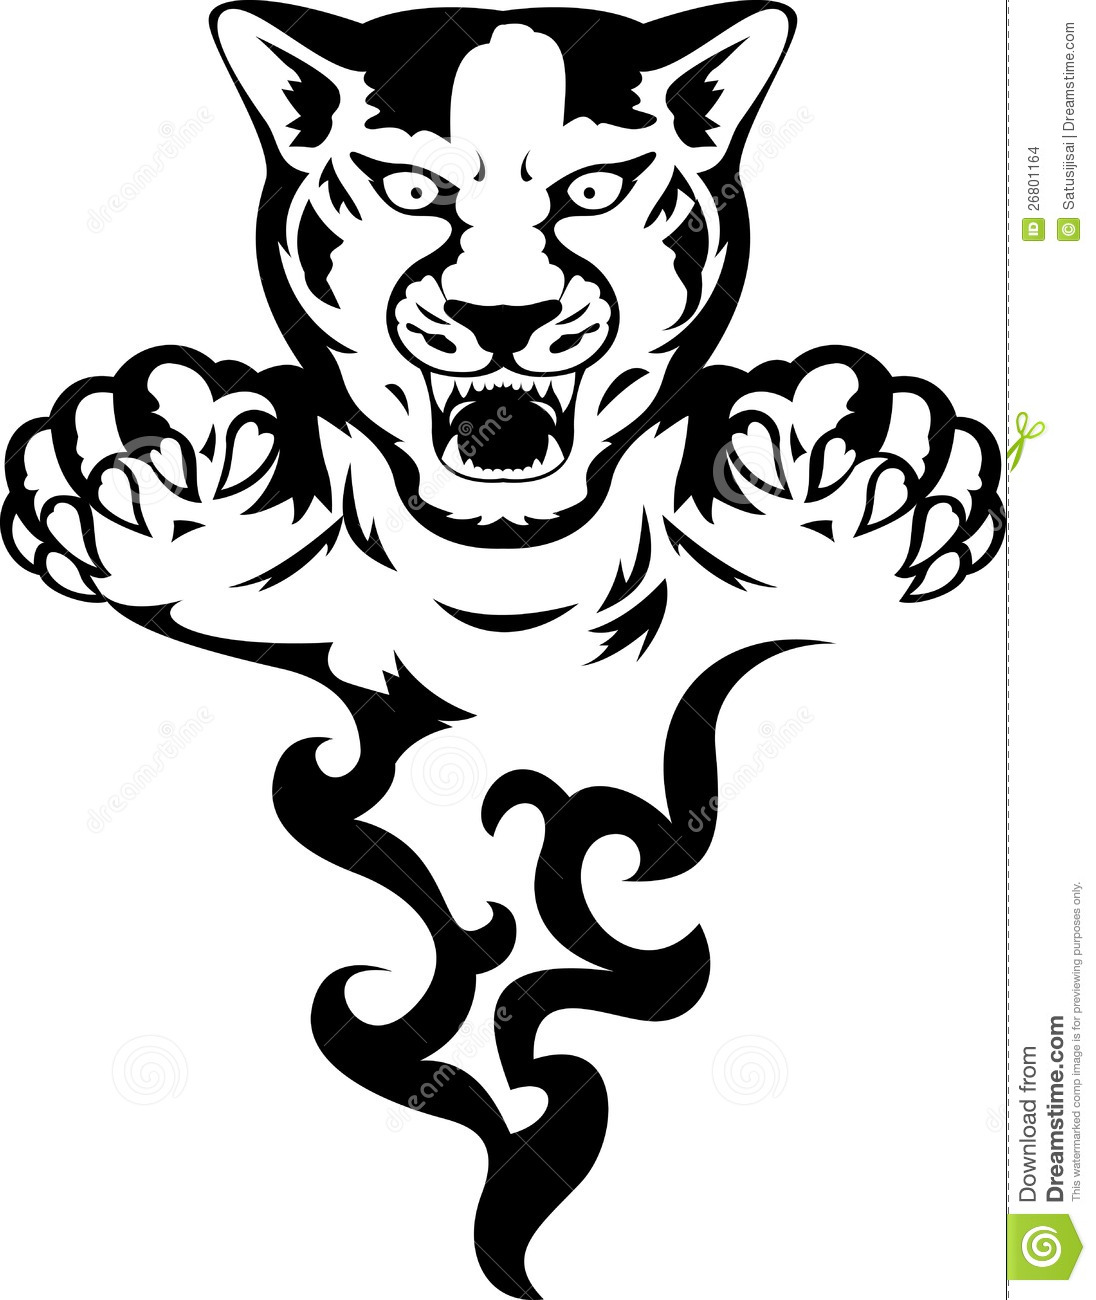 Panther with flame stock illustration. Image of angry ...